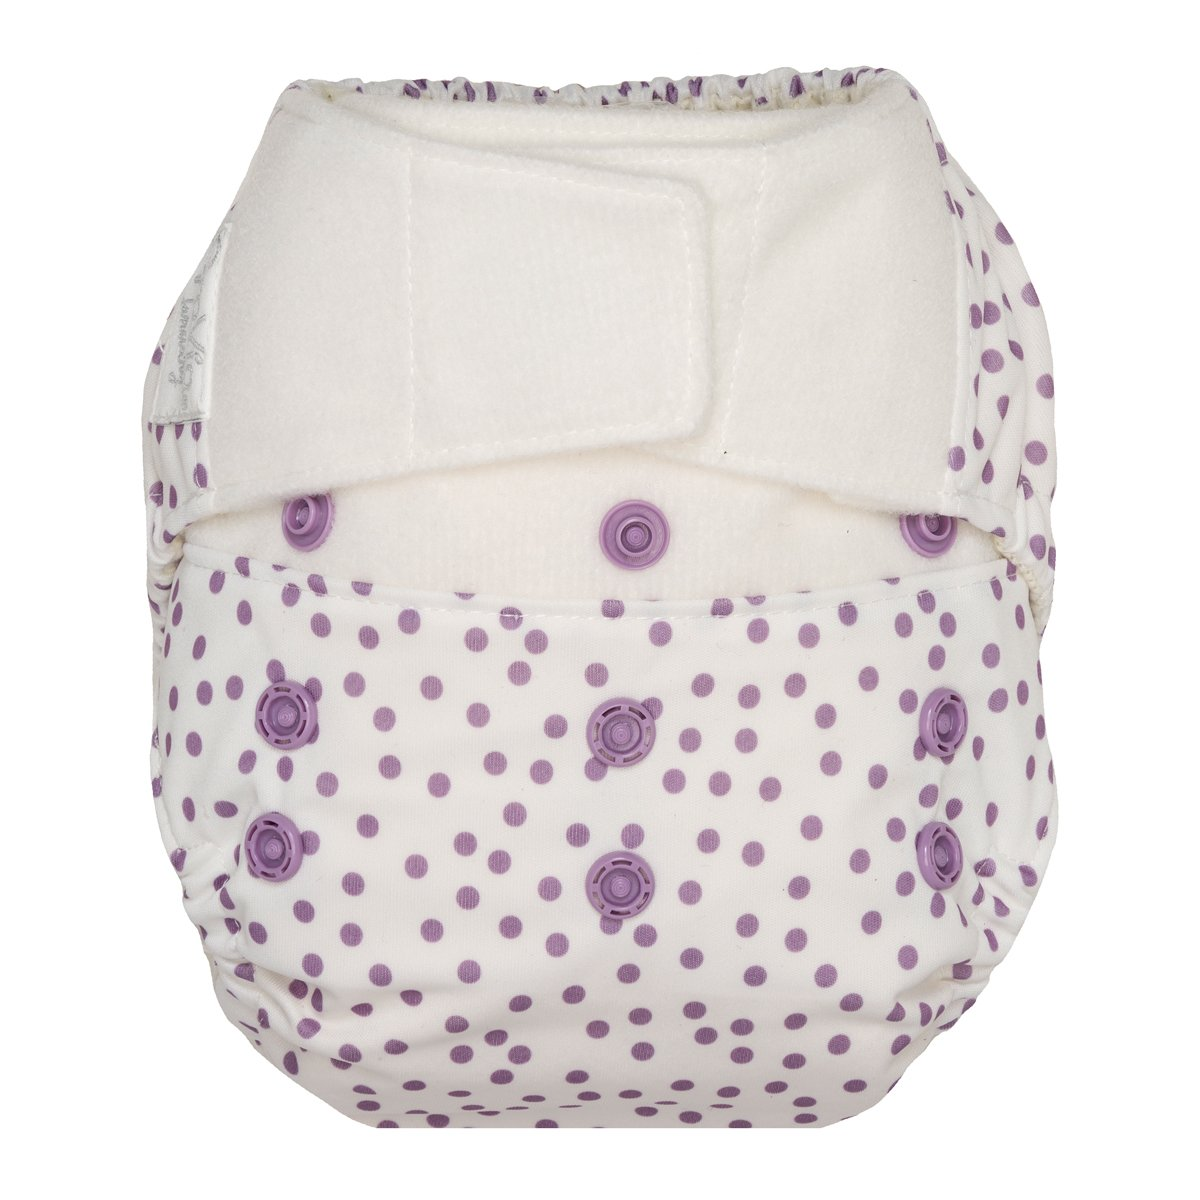 GroVia One Size Cloth Diaper Shell Set -  Violet Dot